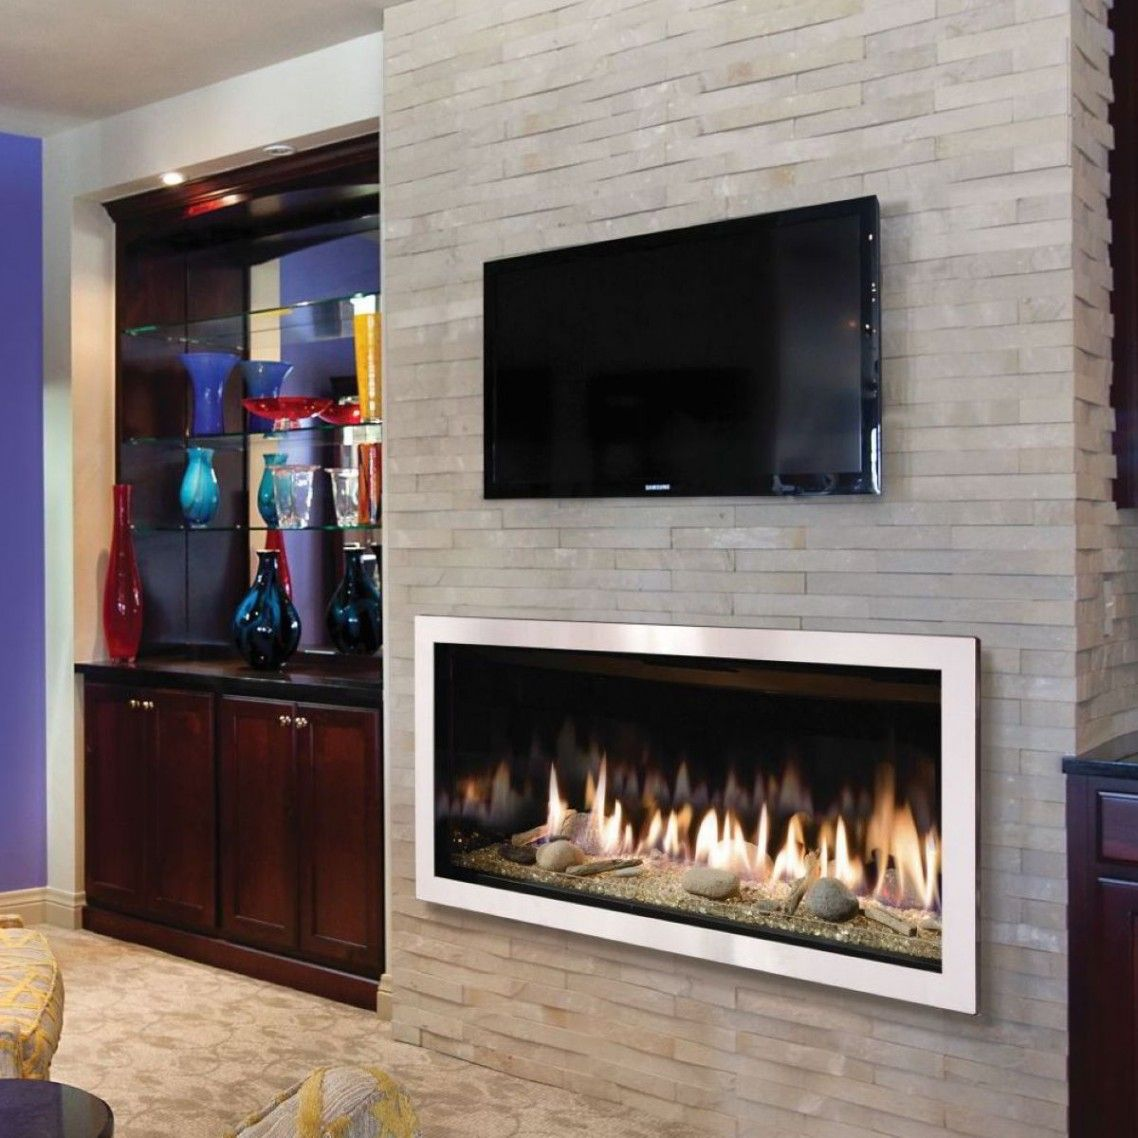 brick wall background modern brick fireplace mantel with tv wall rh pinterest com